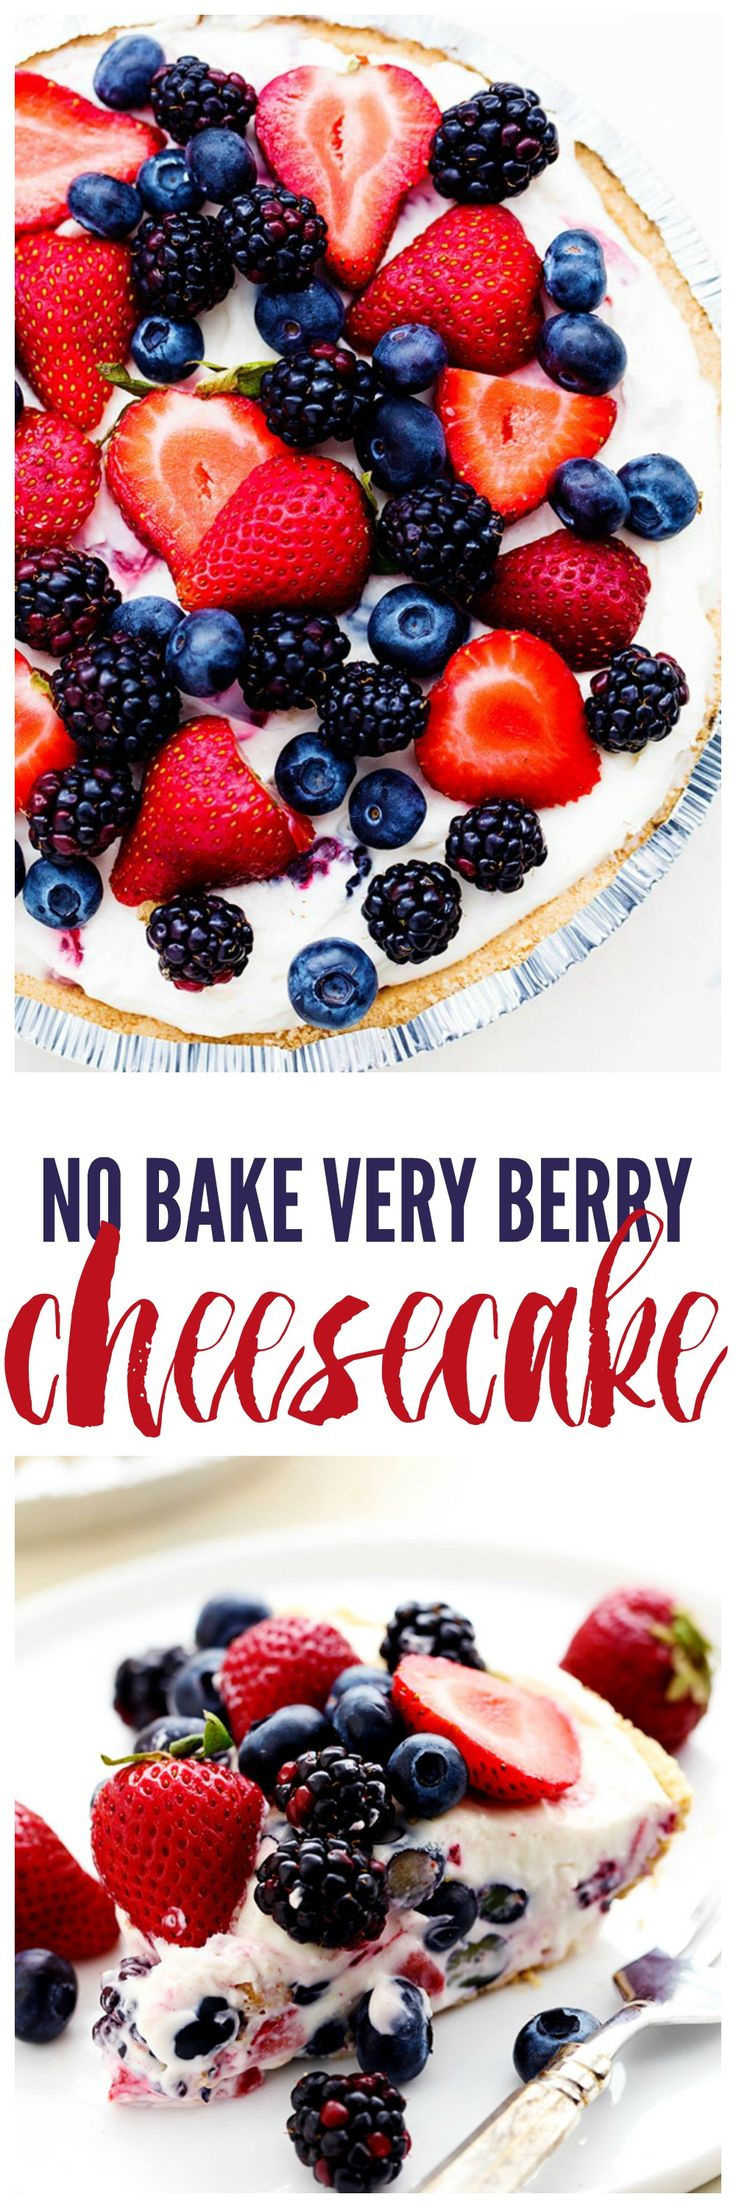 No Bake Very Berry Cheesecake comes together in just 10 minutes! It is filled with fresh summer berries hidden inside a creamy cheesecake and is incredible!